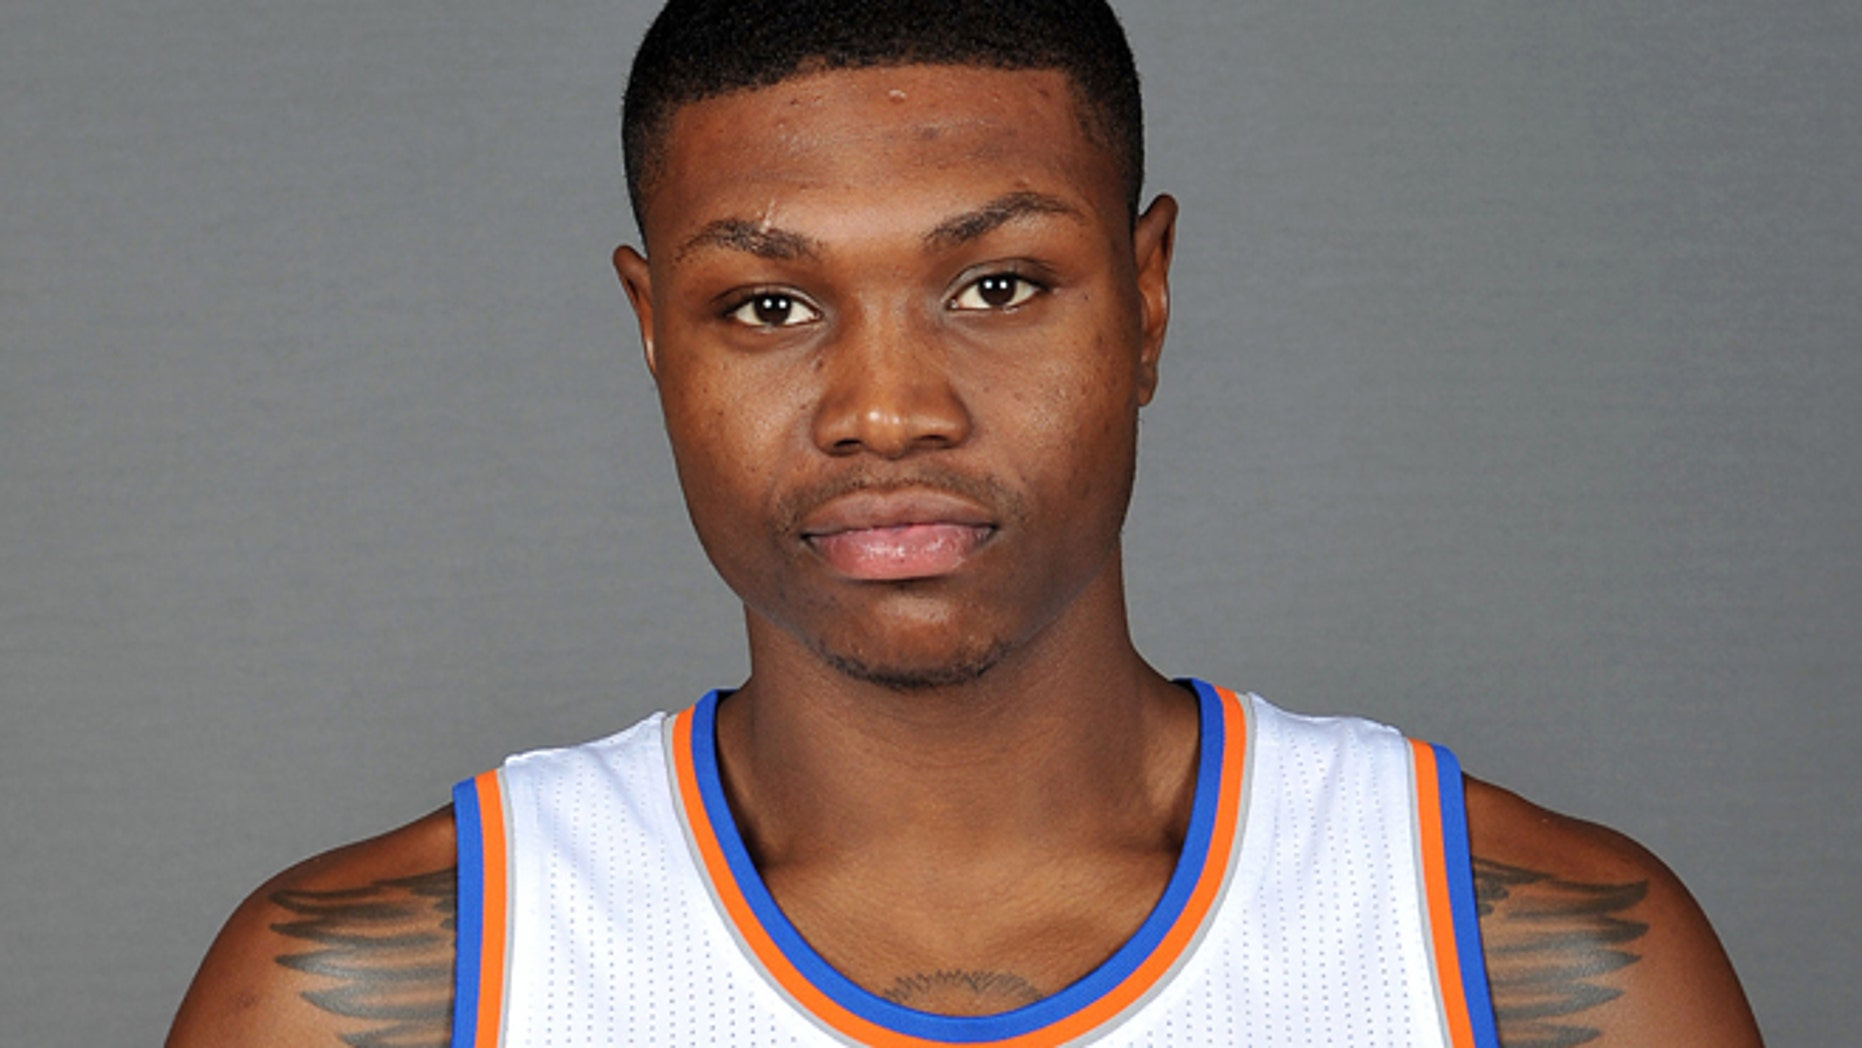 Sep 28, 2015: Knicks forward Cleanthony Early was reportedly shot in the knee early Wednesday.